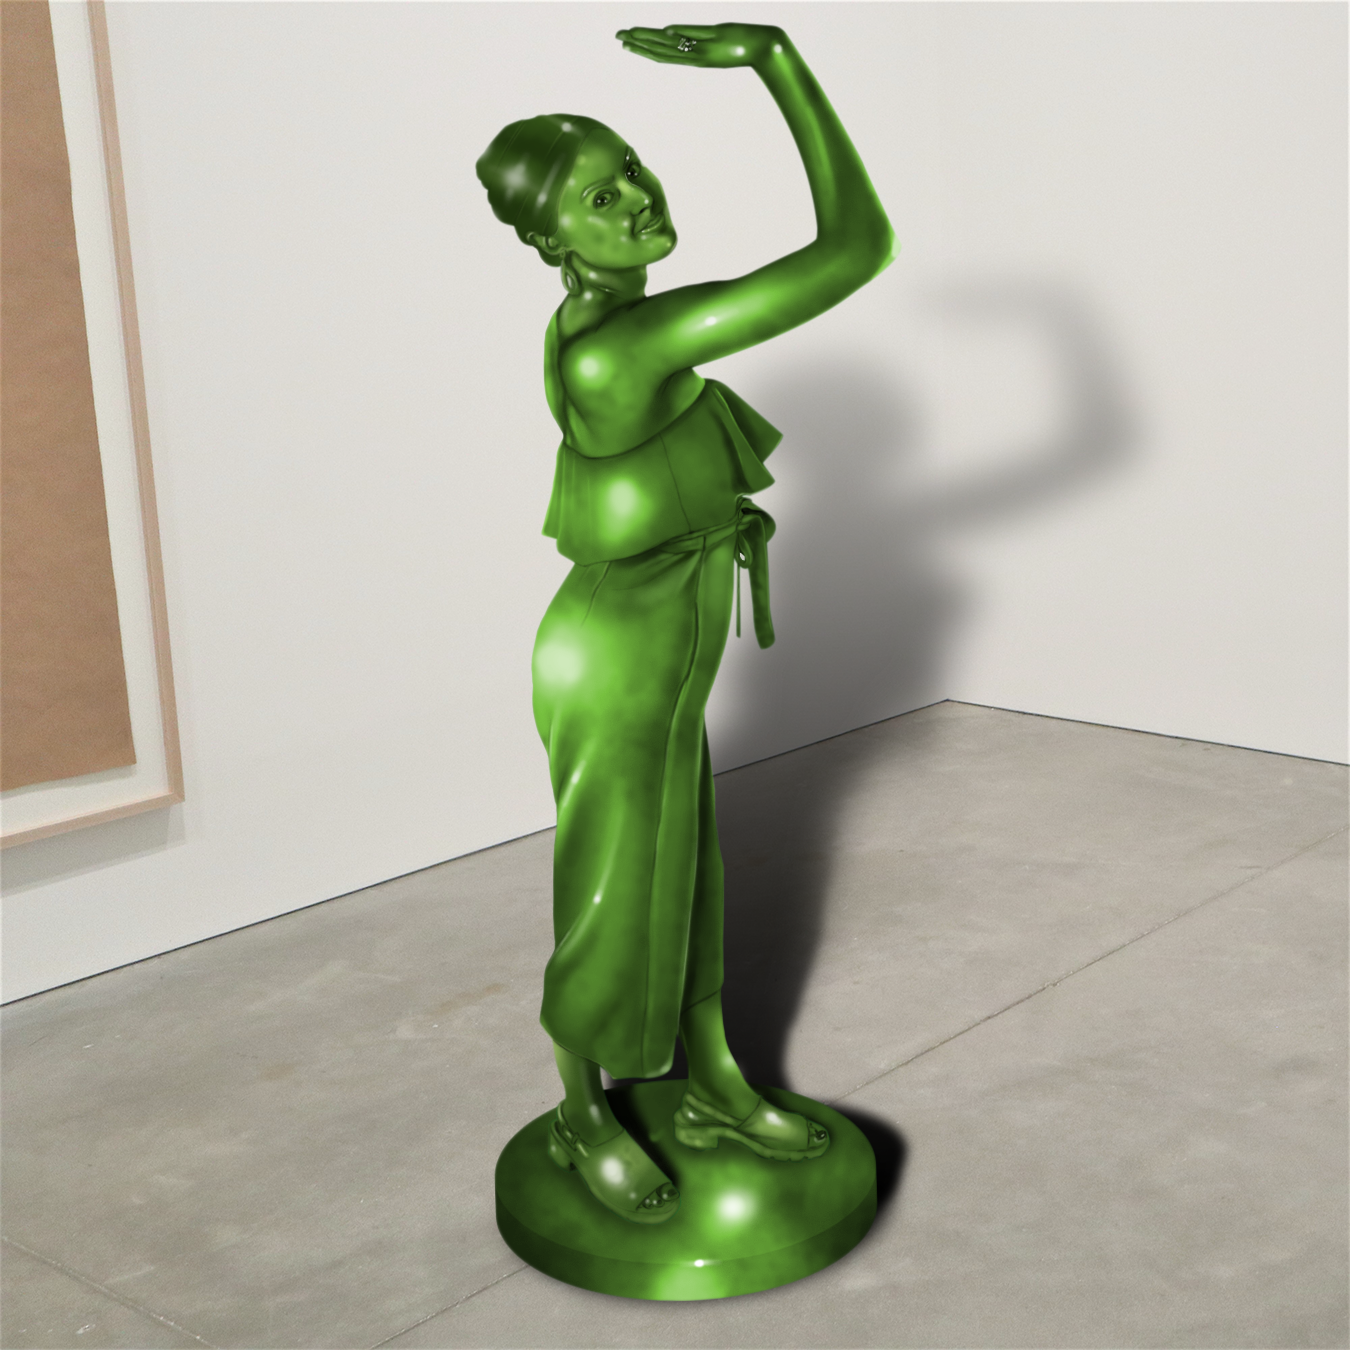 """Emma Stone,"" jade, Institute of Contemporary Art, Boston   2018  JPG  During an installation at the Institute of Contemporary Art in Boston, viewers were invited to imagine themselves as statues in the ICA's permanent collection. Participants were photographed posing as a statue they felt represented themselves, created a name for their fictional statue, and selected a stone from which their statue would be made. Professional and amateur digital artists were commissioned to create renderings of the statues, which were superimposed on photos of the ICA's permanent collection gallery space."